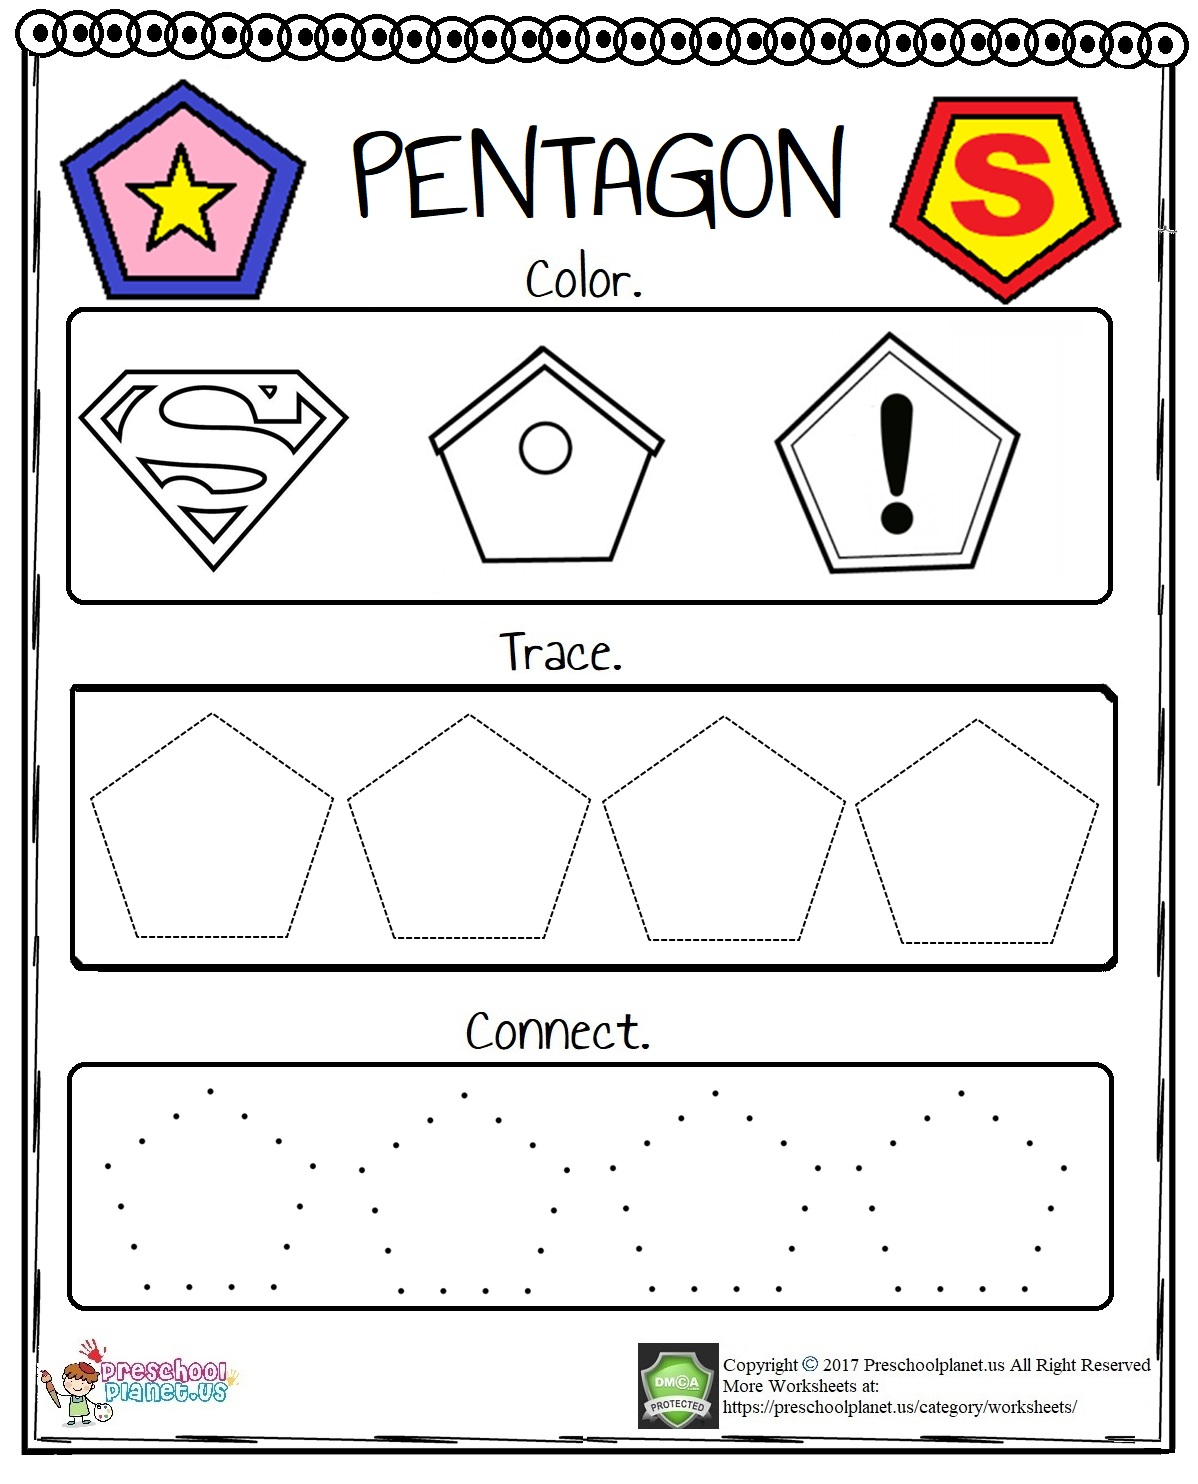 Missing Number Worksheets For Preschool Preschoolplanet